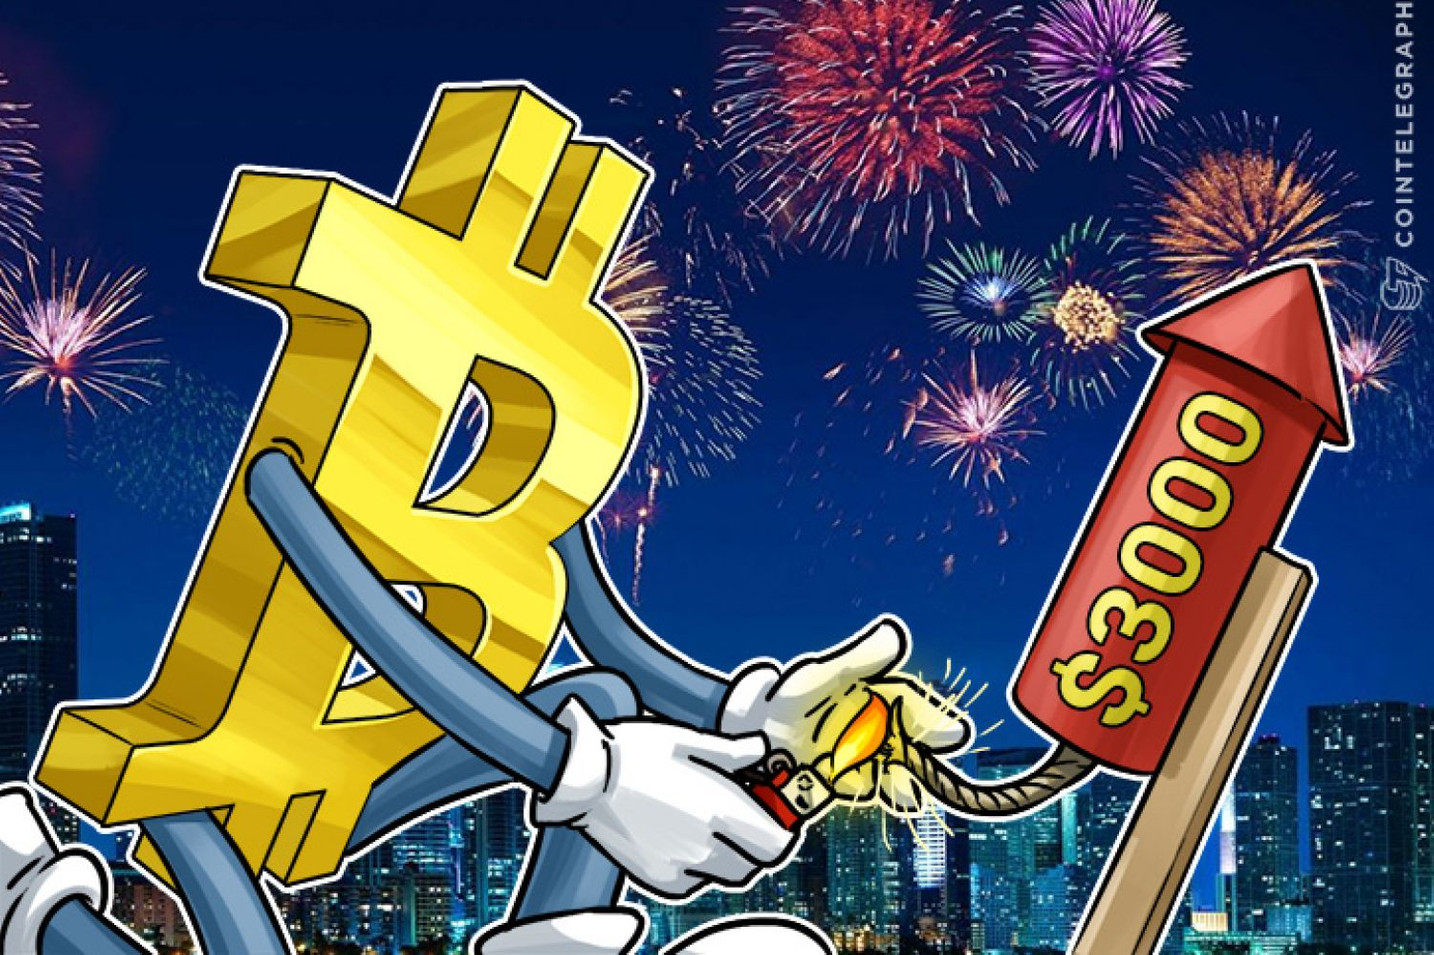 Bitcoin Price is Likely to Surpass $3,000 After SegWit Activation: Opinion